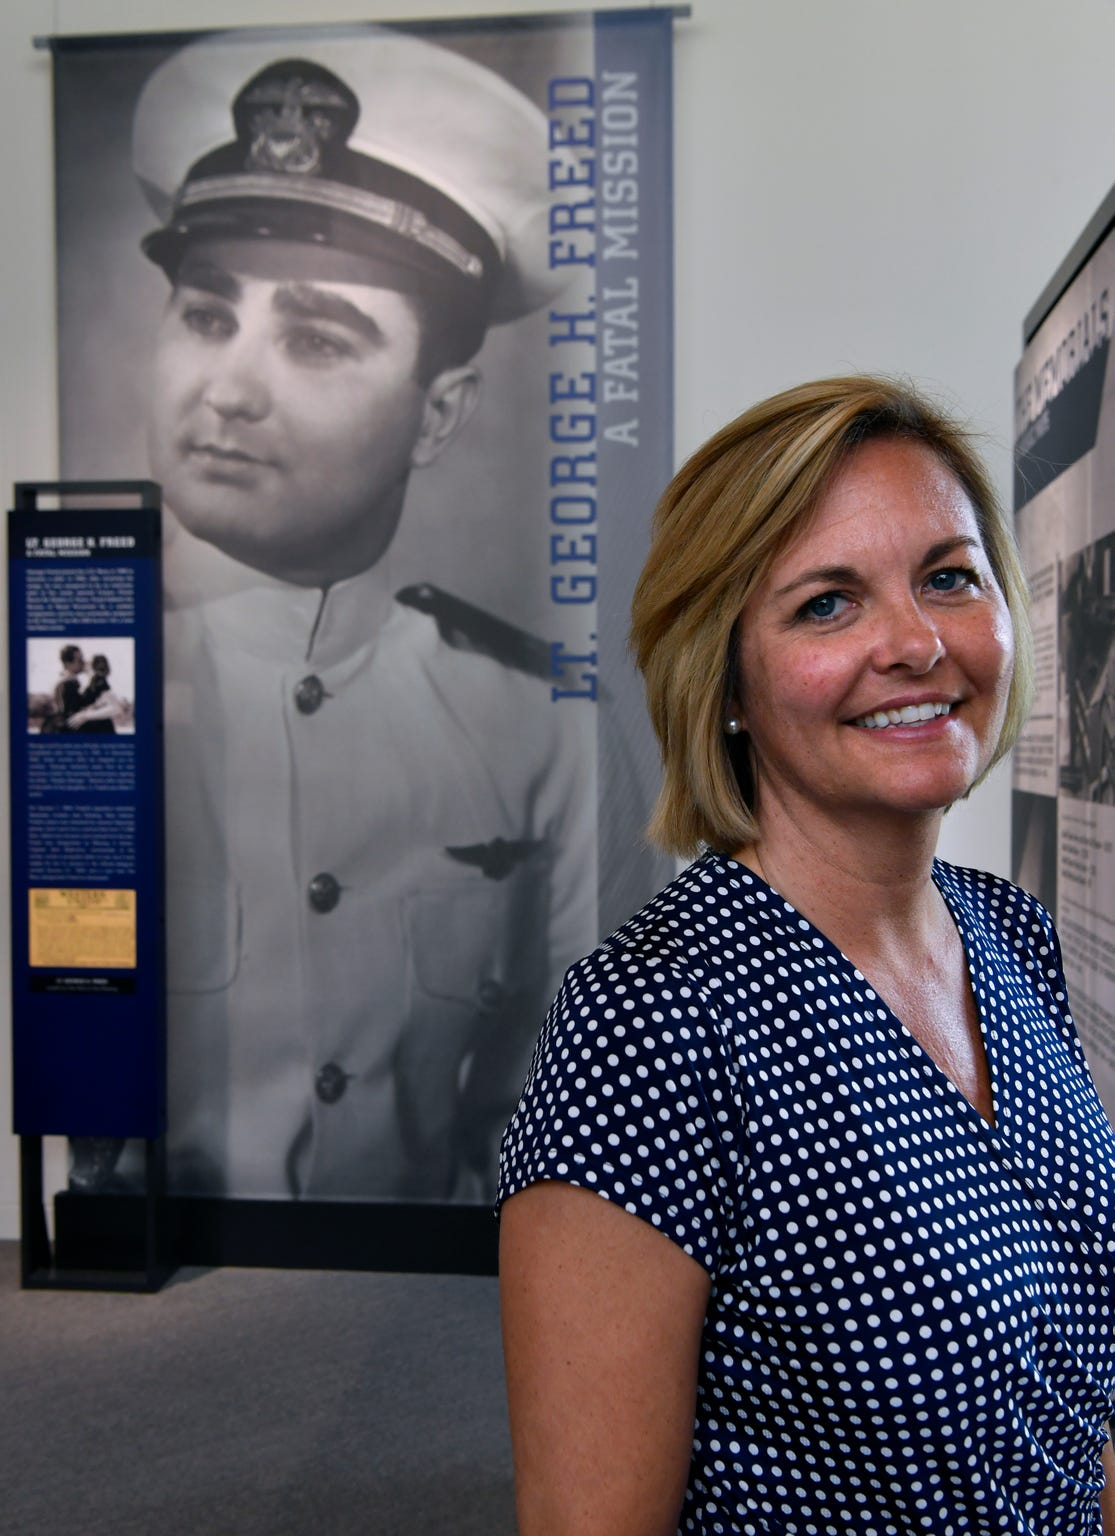 Amy Bachofen stands before a poster Saturday depicting her grandfather George Freed, who was shot down near New Ireland during World War II. Freed is one of the stories featured at Manila American Cemetery's new Visitor Center.